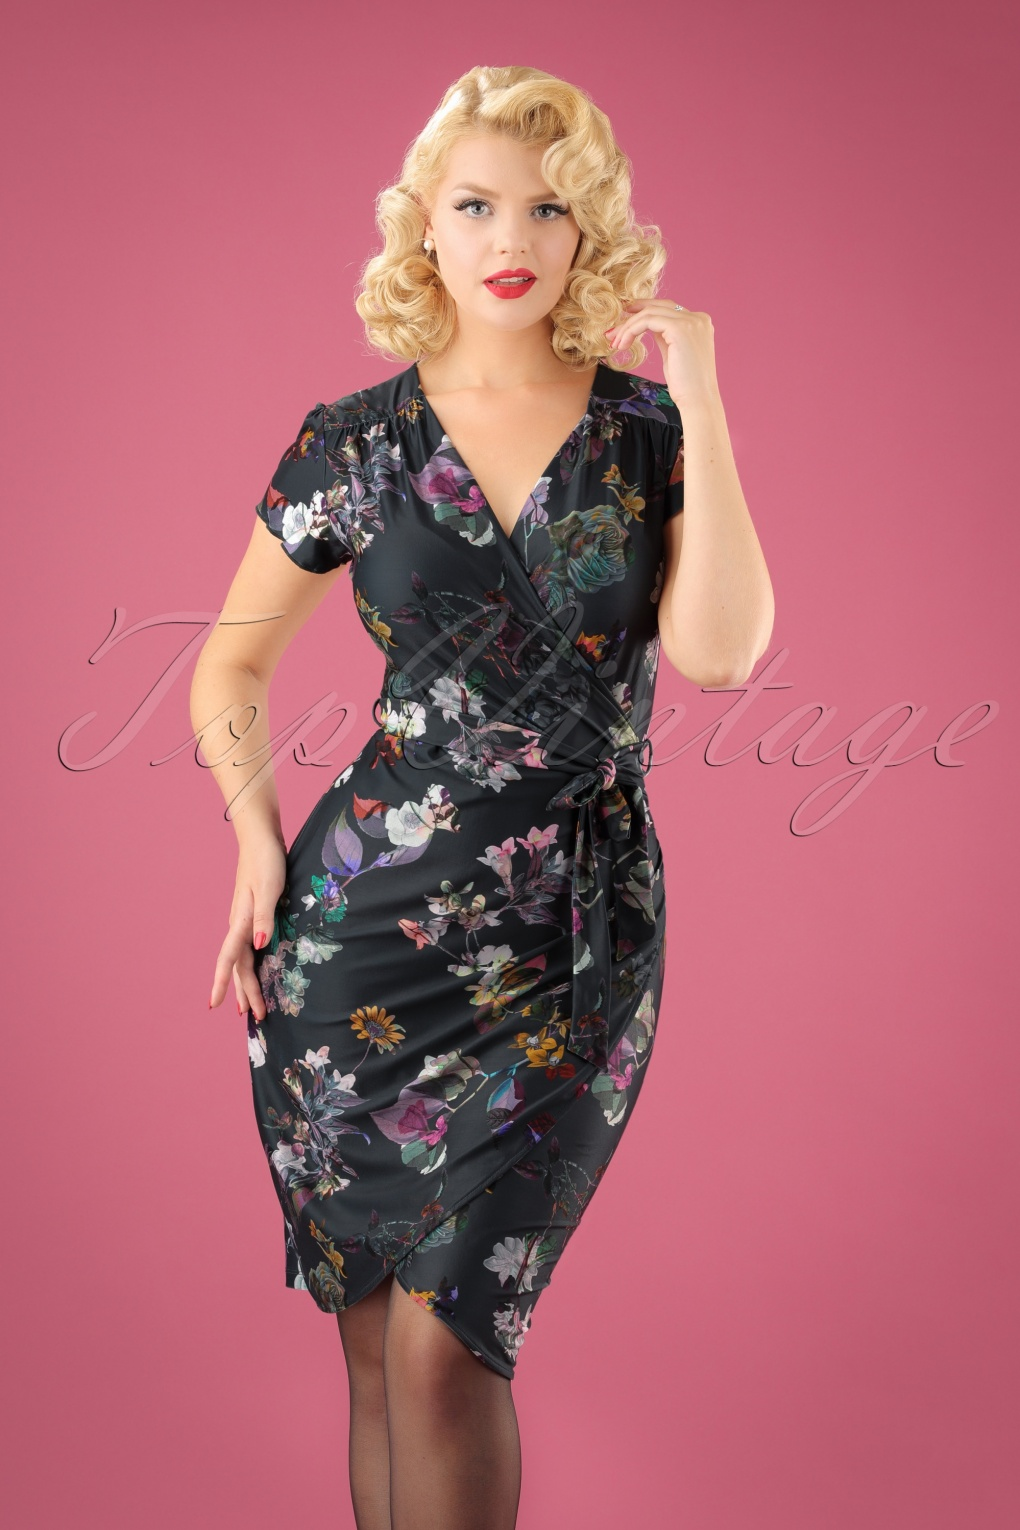 Vintage Inspired Cocktail Dresses, Party Dresses 60s Digital Snowdrop Wrap Dress in Dark Grey £80.04 AT vintagedancer.com